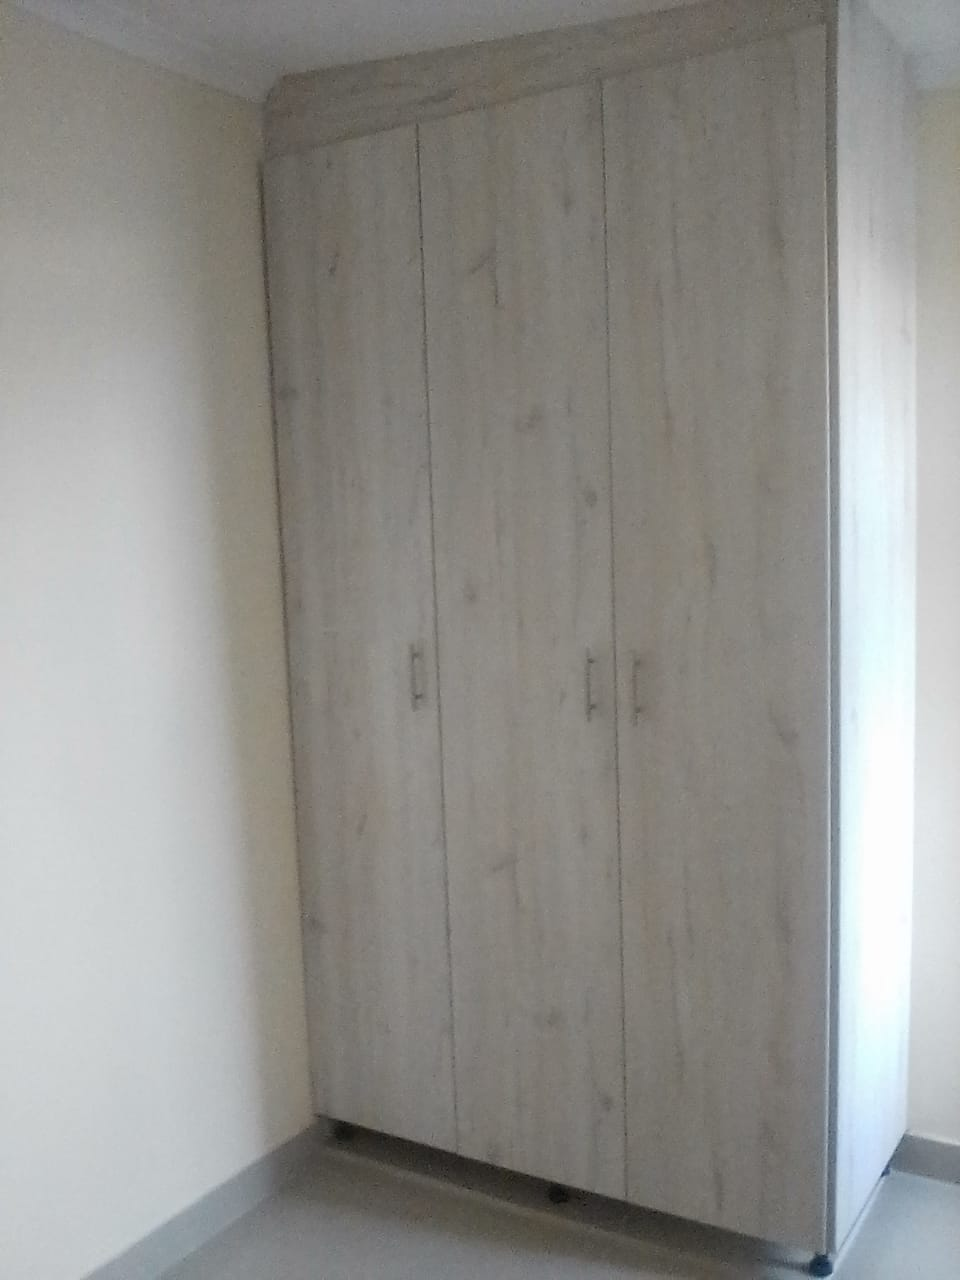 2 bedroom unit available for rent in 5 Franks Ave